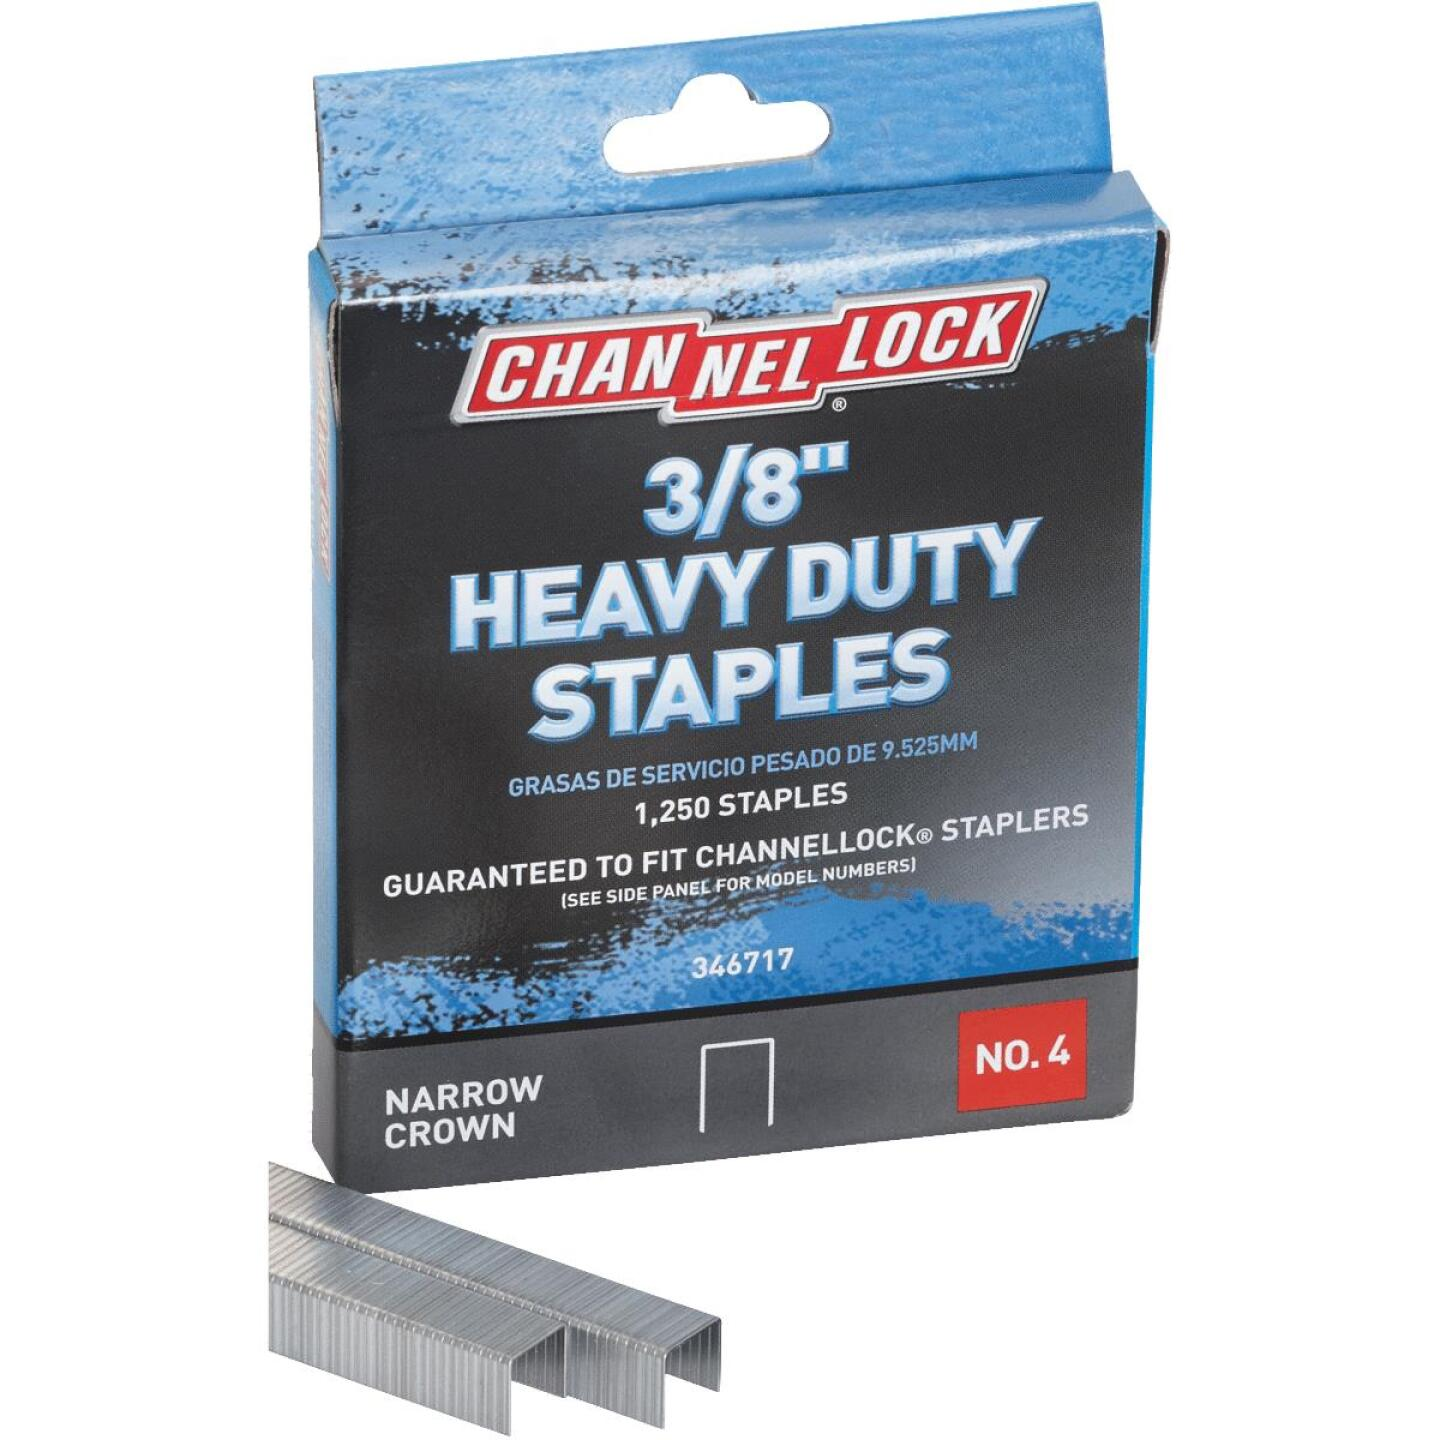 Channellock No. 4 Heavy-Duty Narrow Crown Staple, 3/8 In. (1250-Pack) Image 4